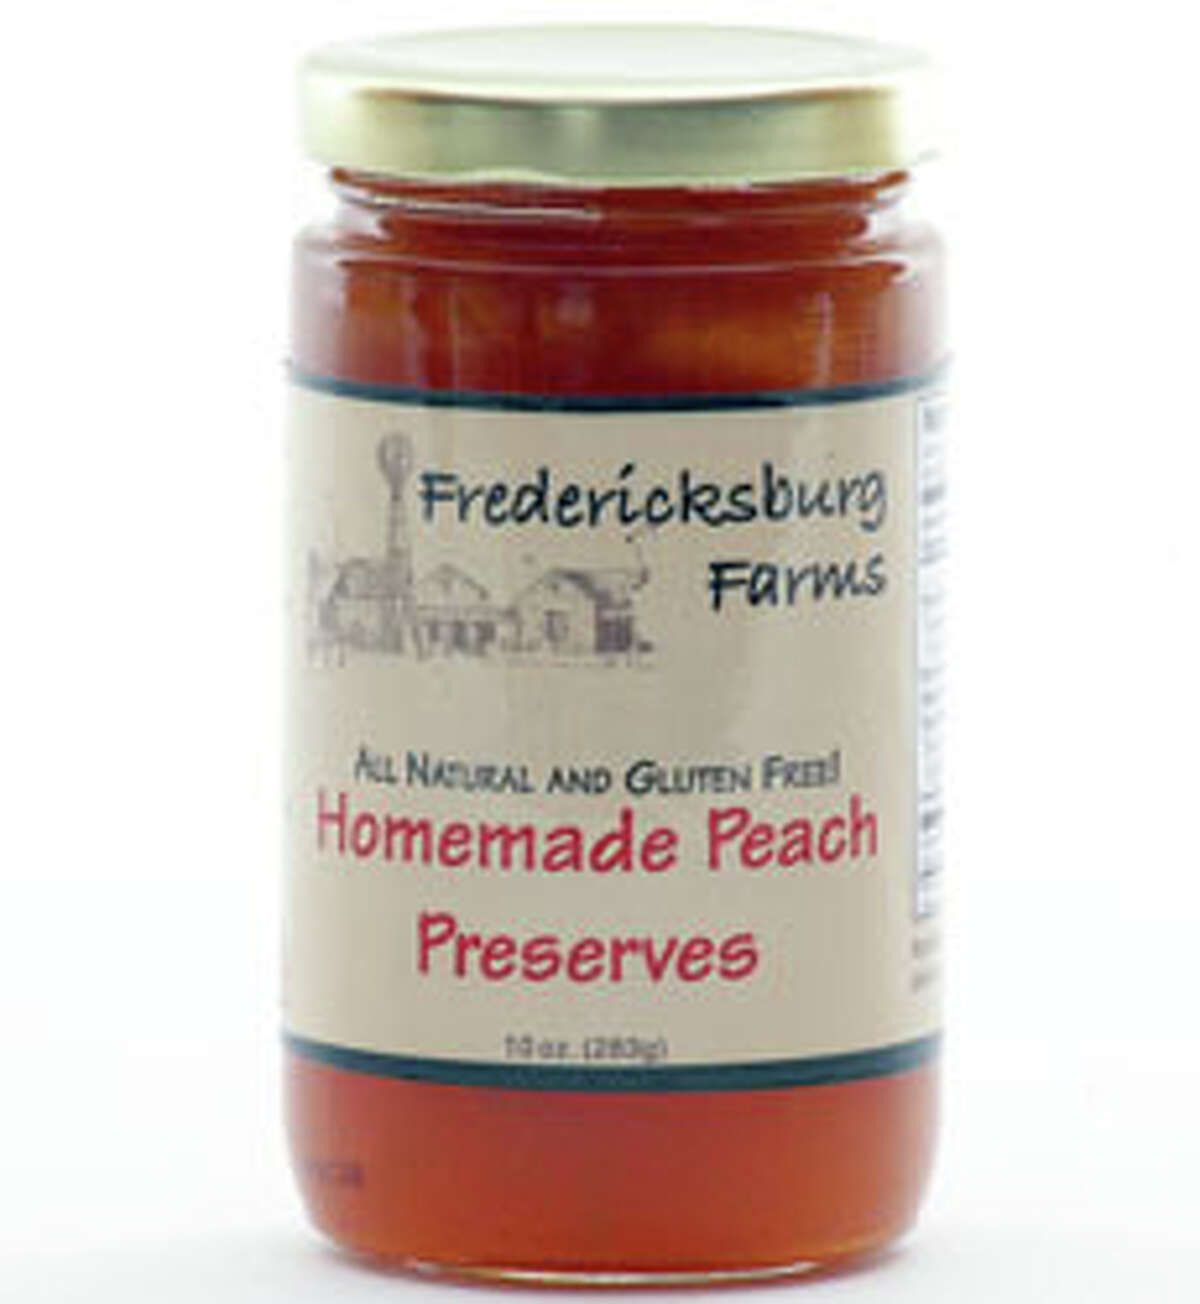 Delicious homeade peach preserves from Fredericksburg Farms for $6.95.